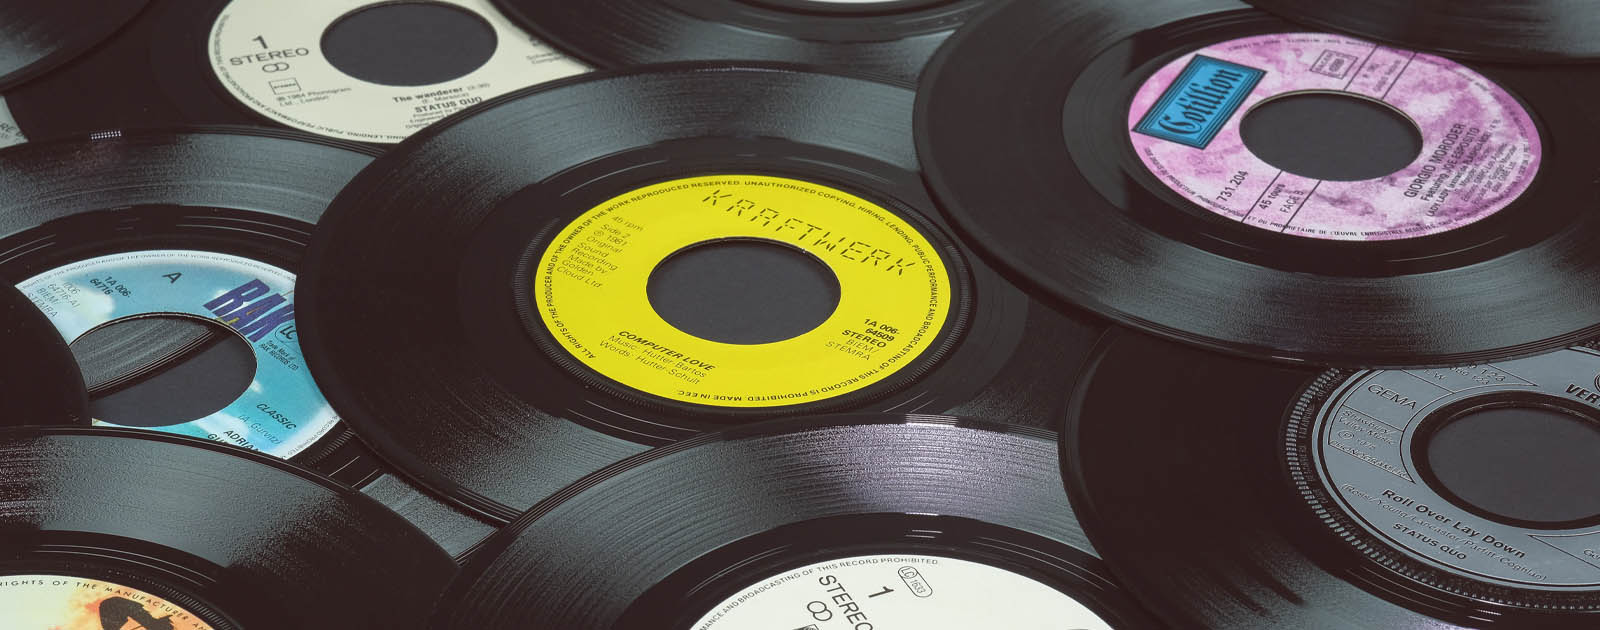 Bartlett Vinyl Record Maker Presses On With Nearly $1M PPP Loan